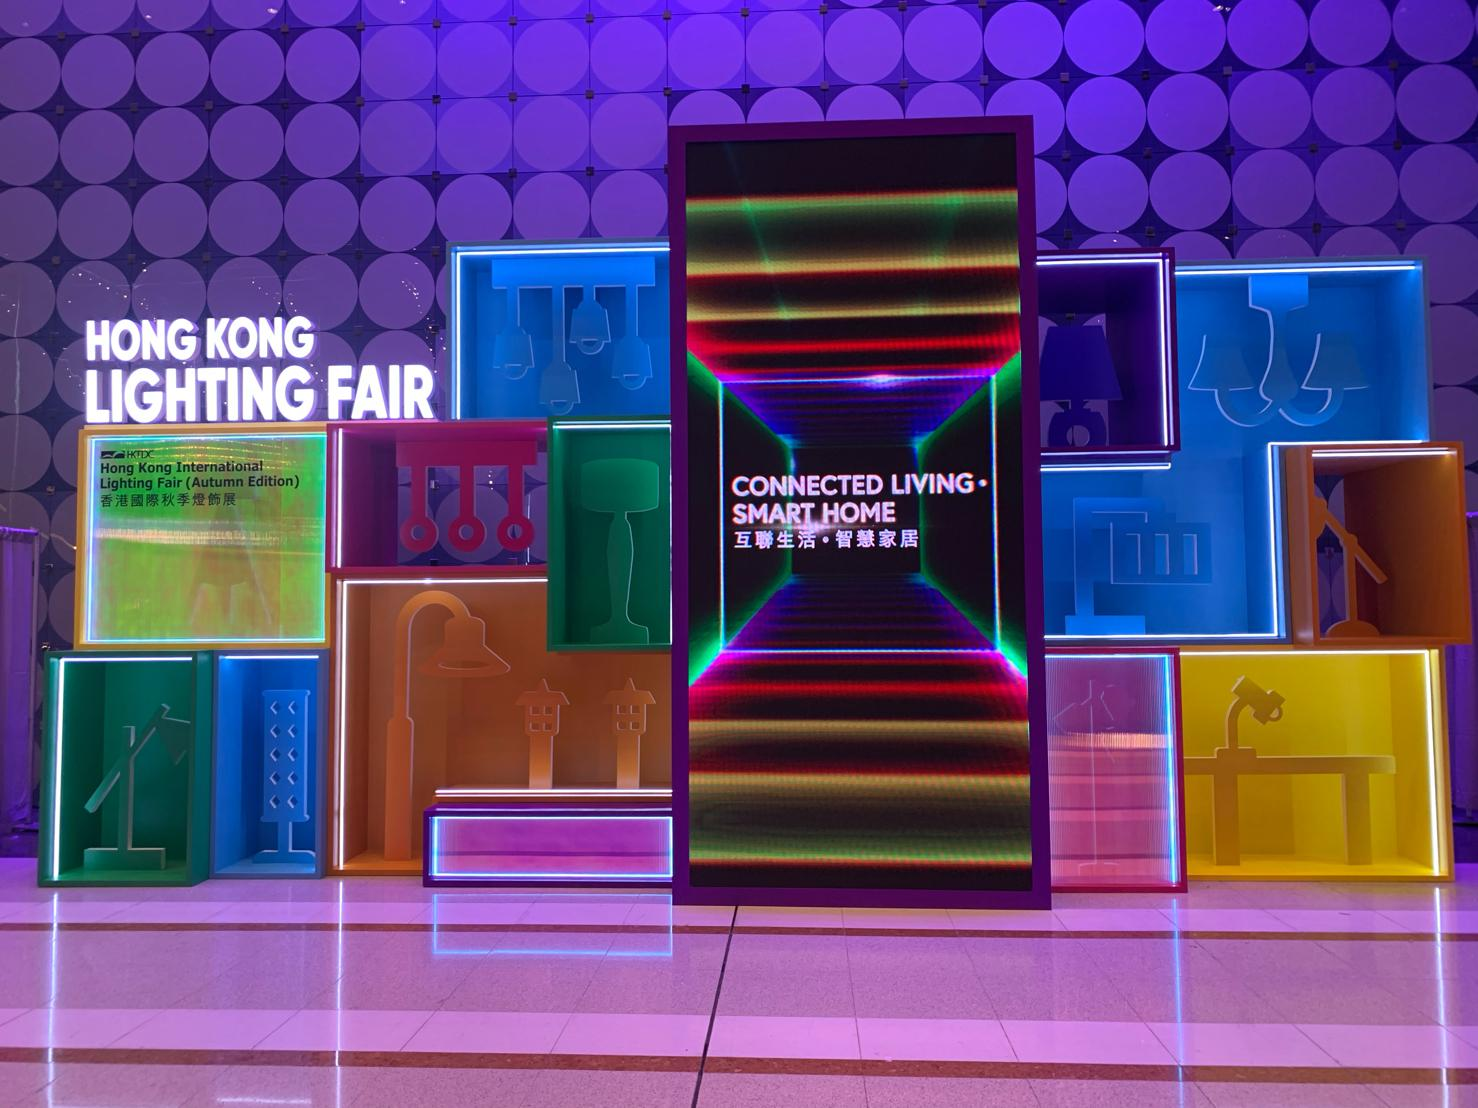 Hong Kong Internation Lighting Fair 2019